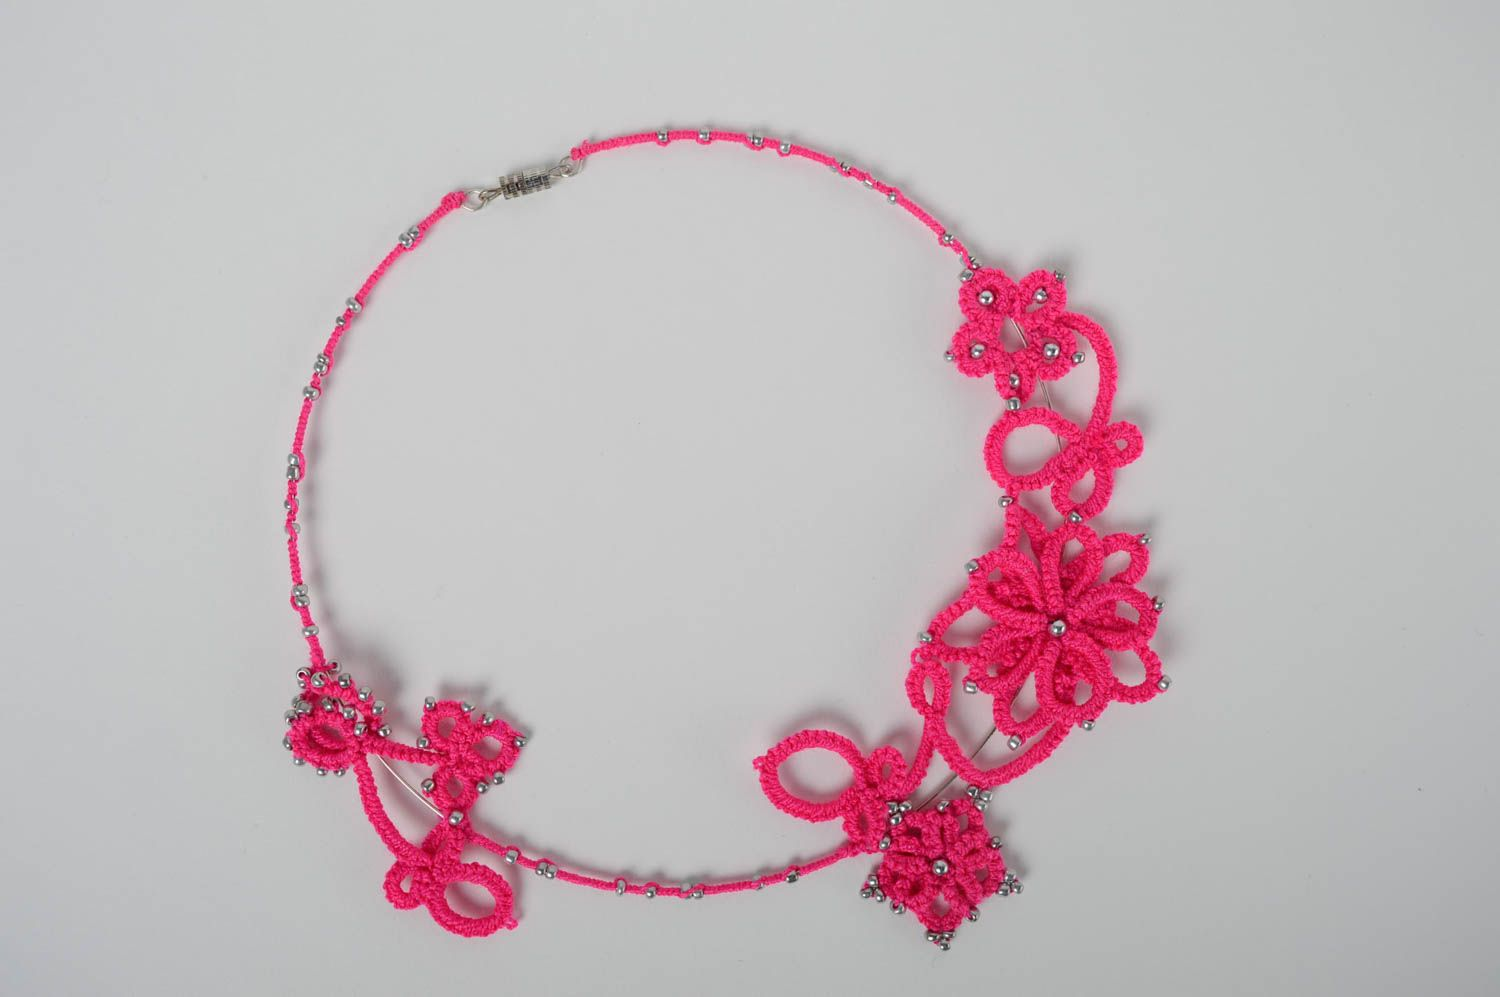 Woven necklace photo 3